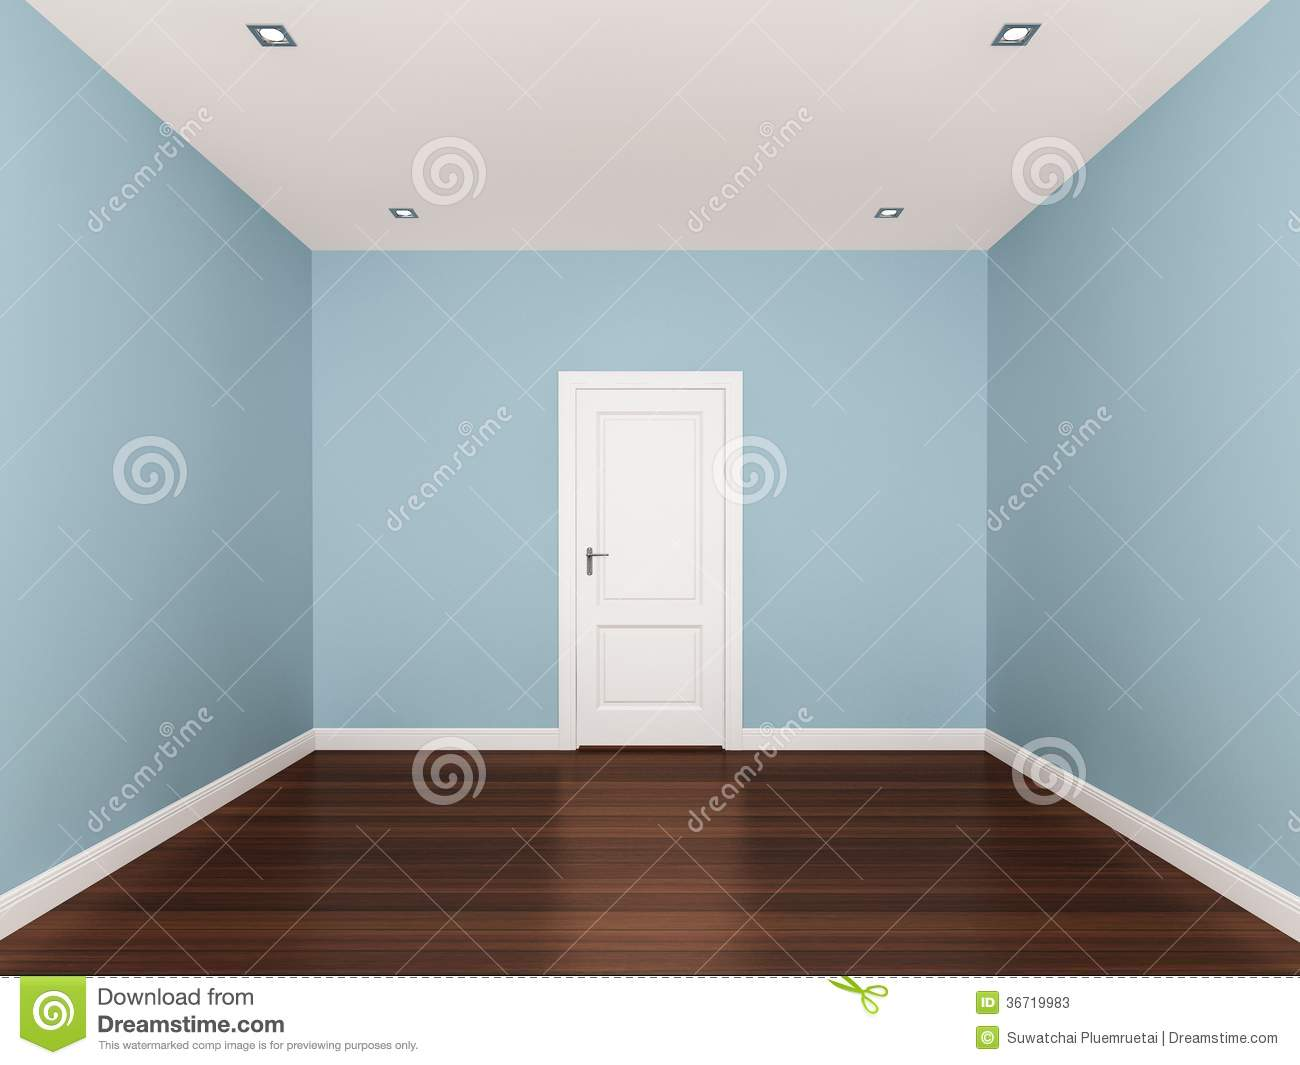 empty room blue light stock illustration - image: 70790548